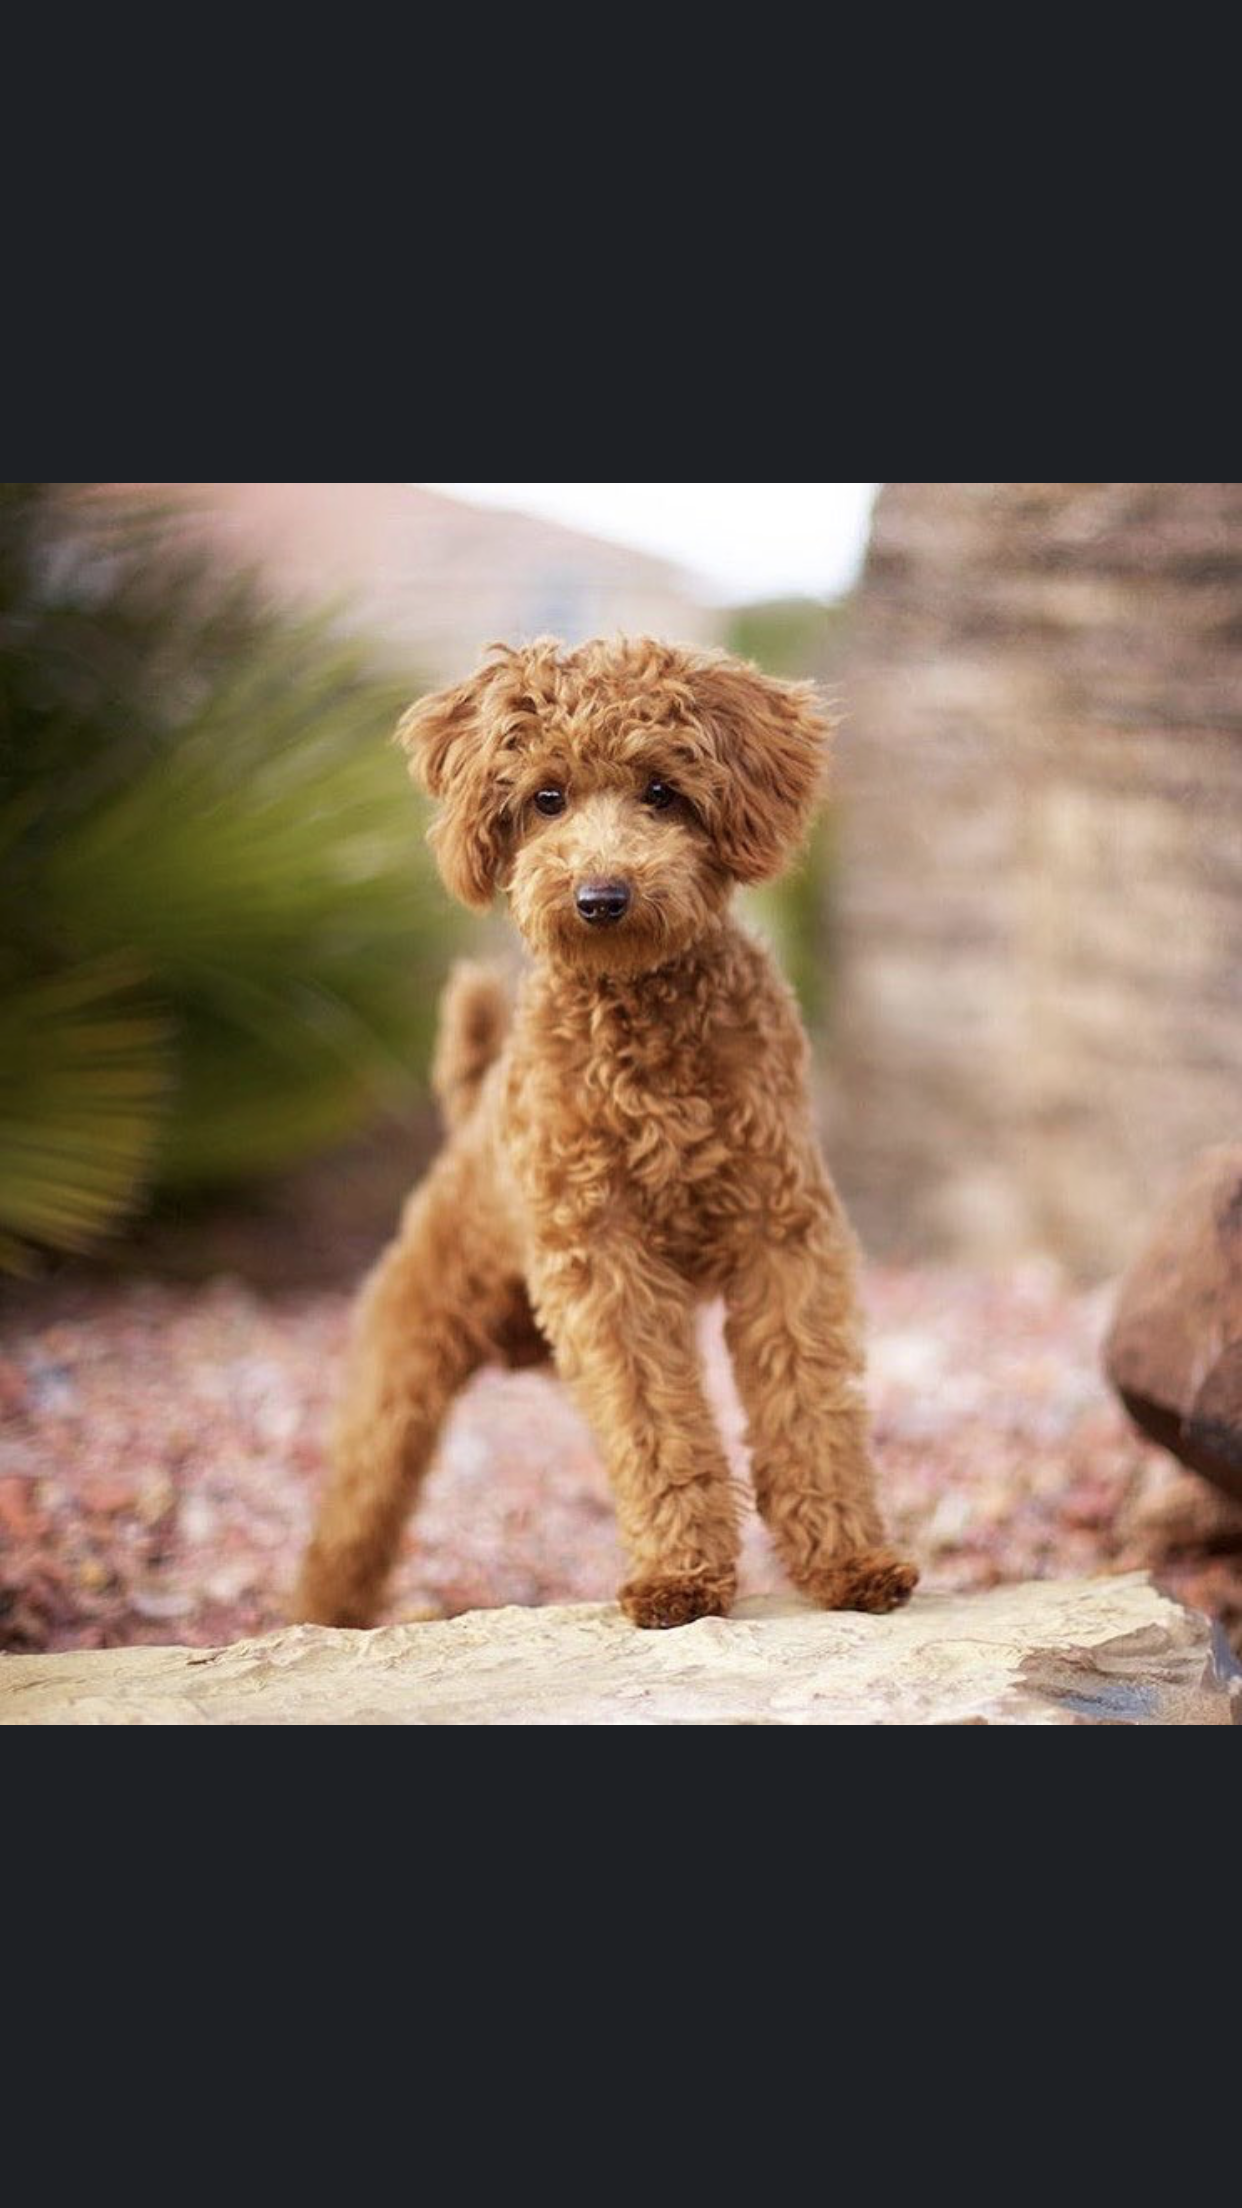 Pin By Tonya Terry On Animals Mini Poodles Poodle Animals